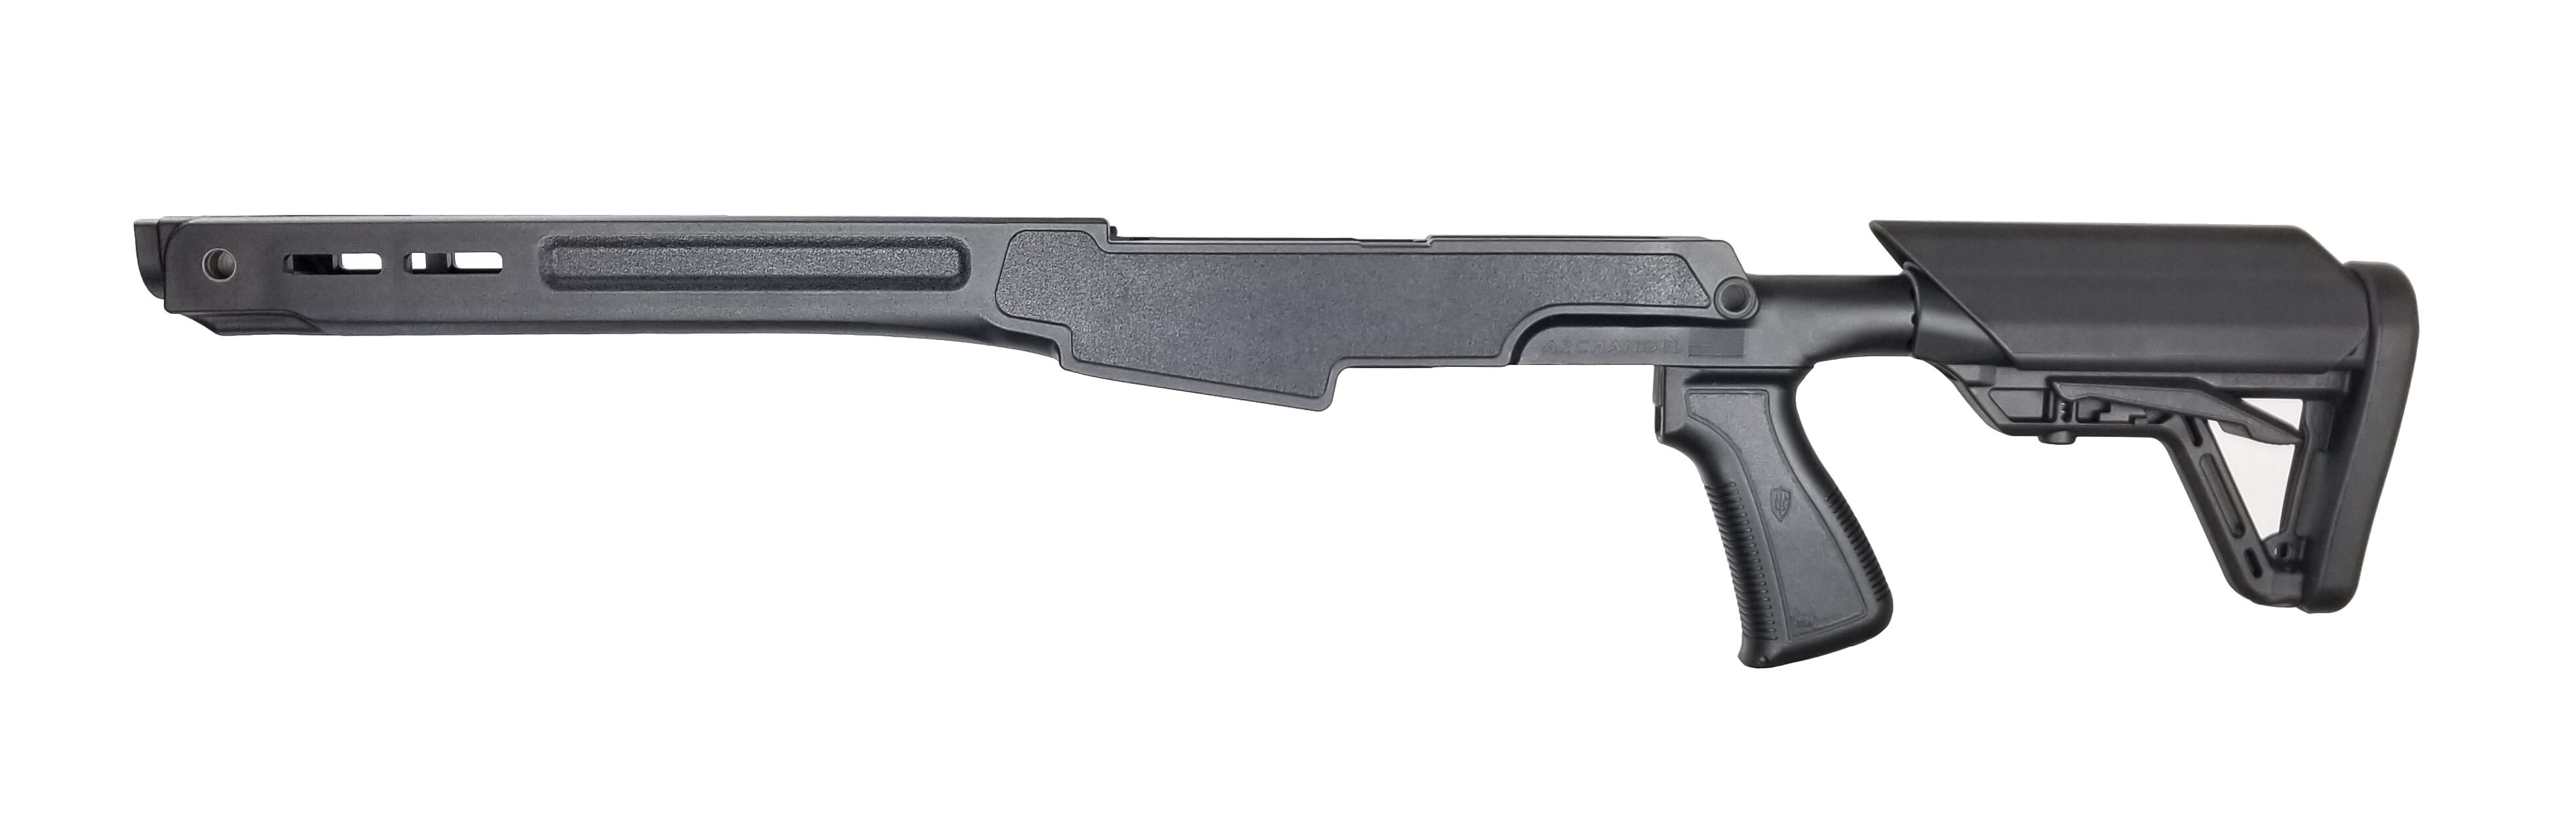 ProMag Archangel M1A Close Quarters Stock